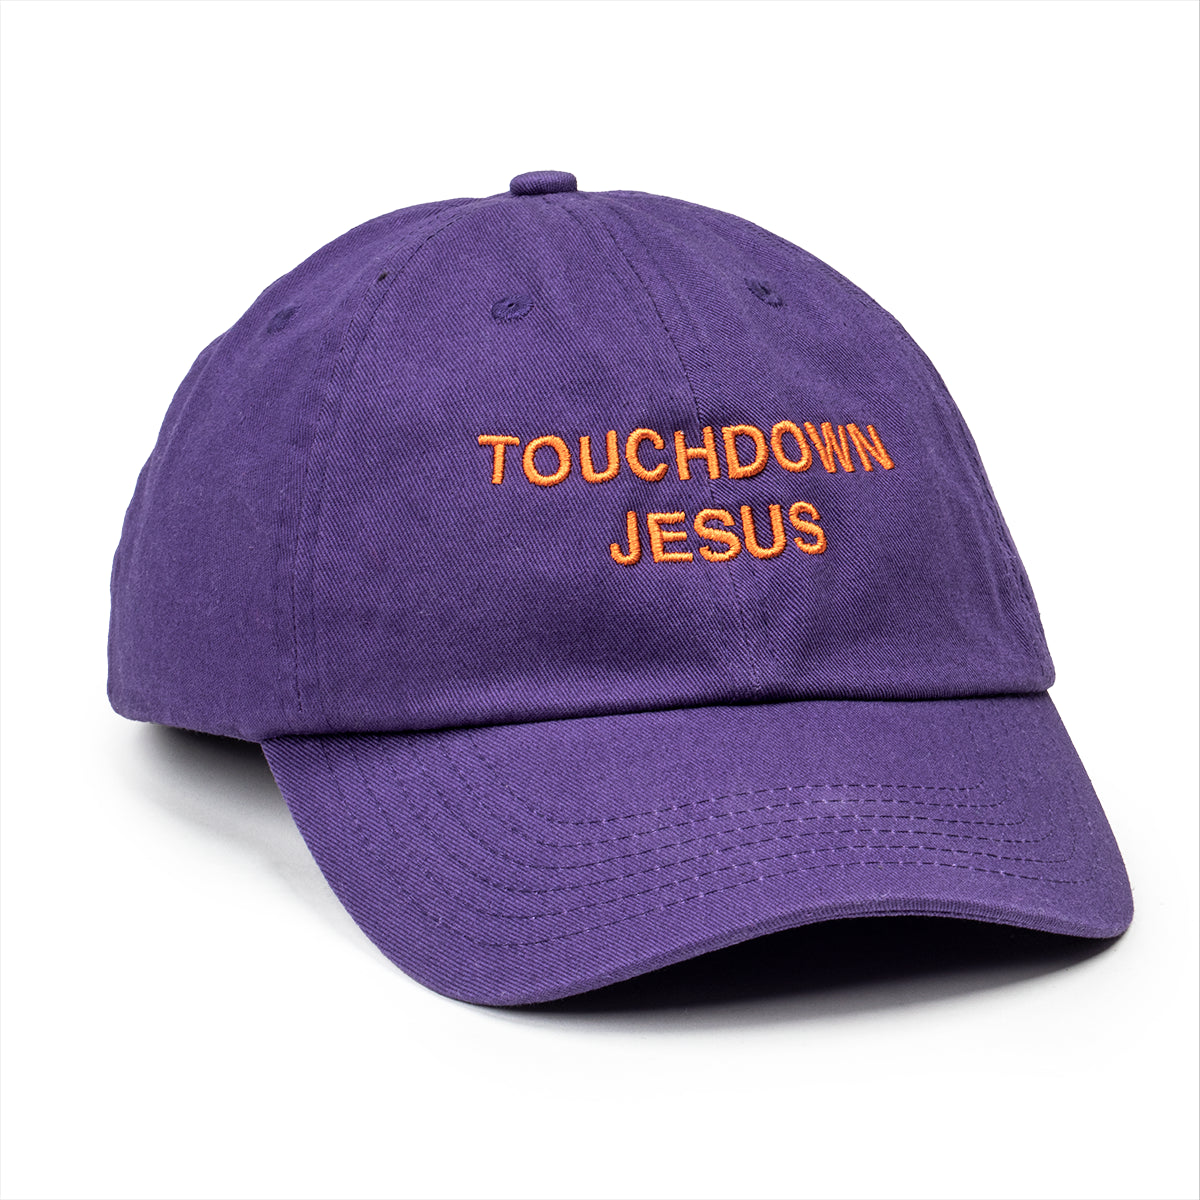 Touchdown Jesus Dad Hat